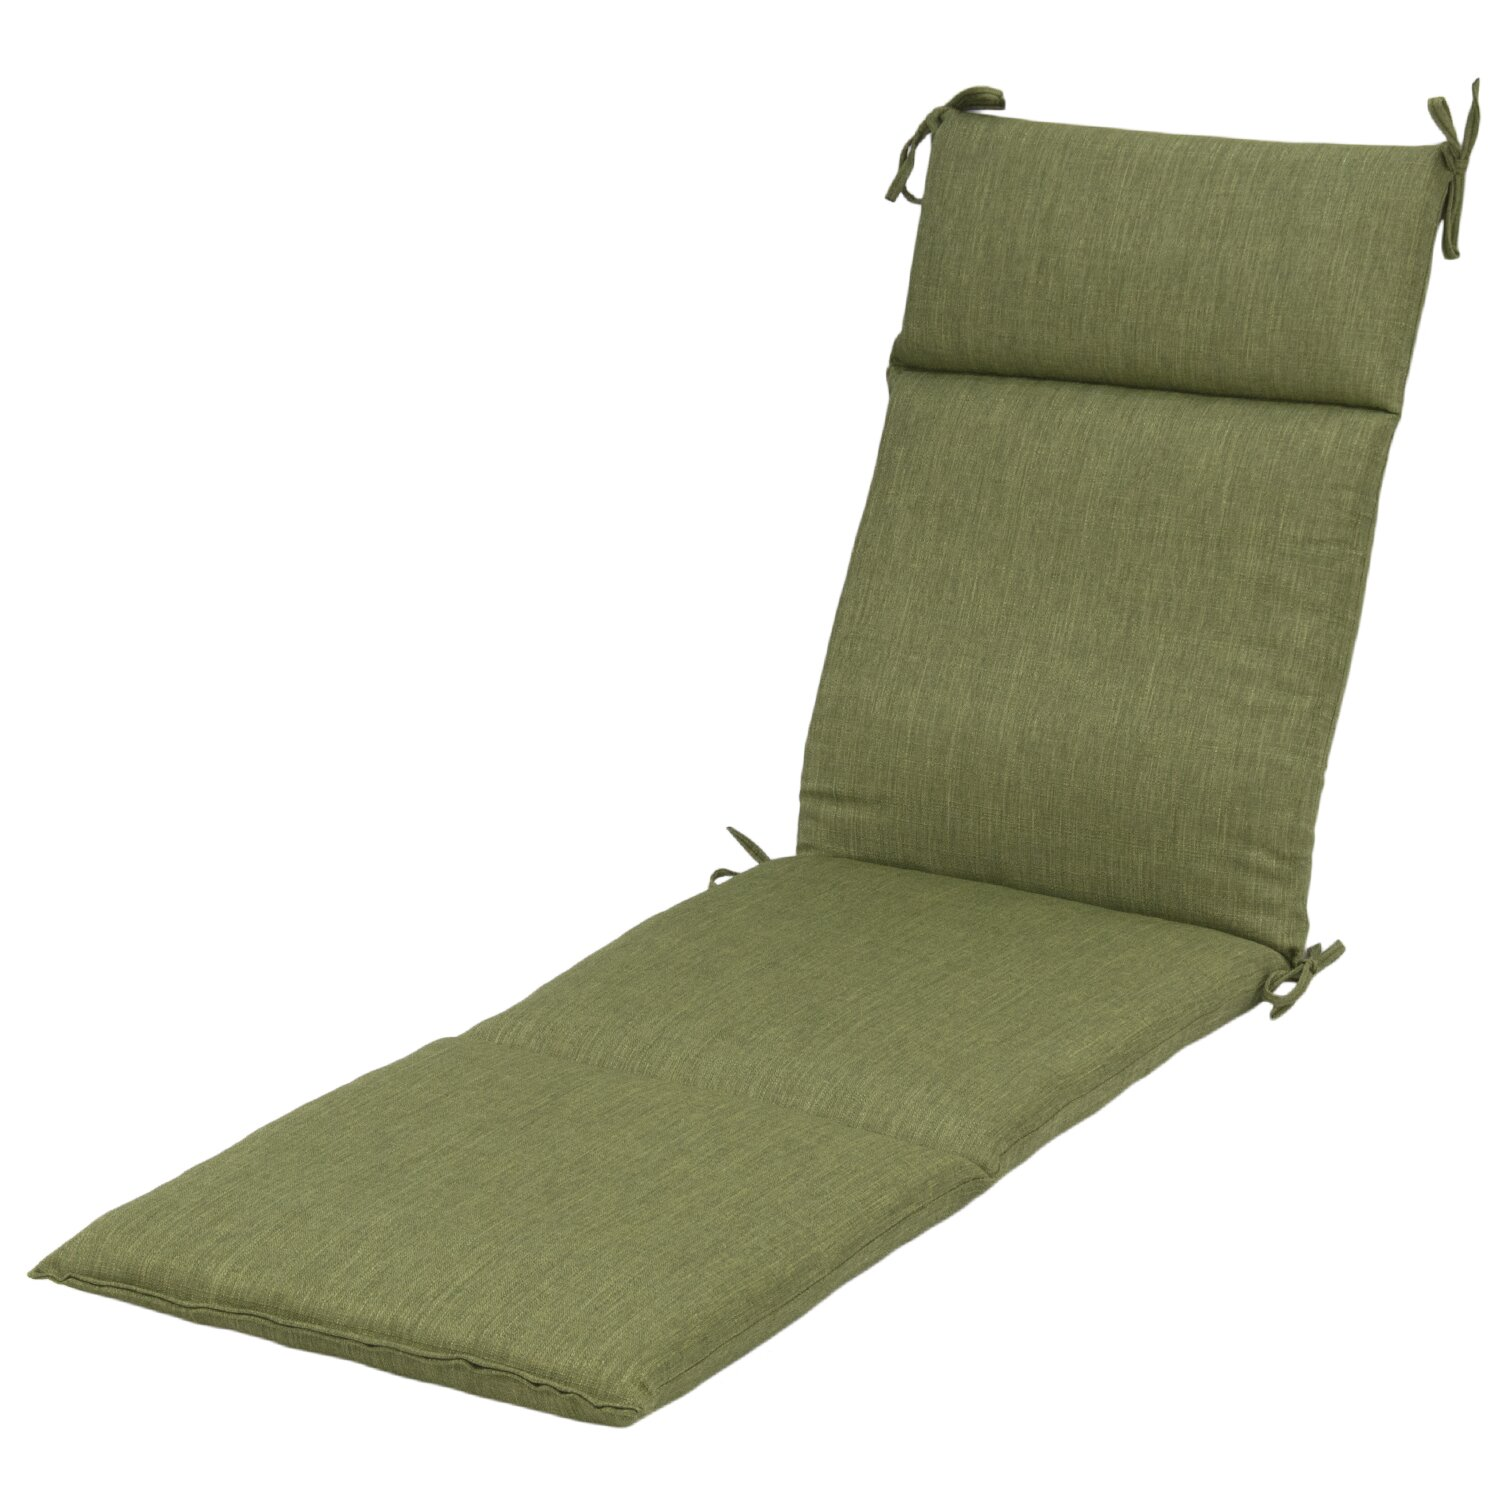 Outdoor chaise lounge cushion wayfair for Chaise longue cushion